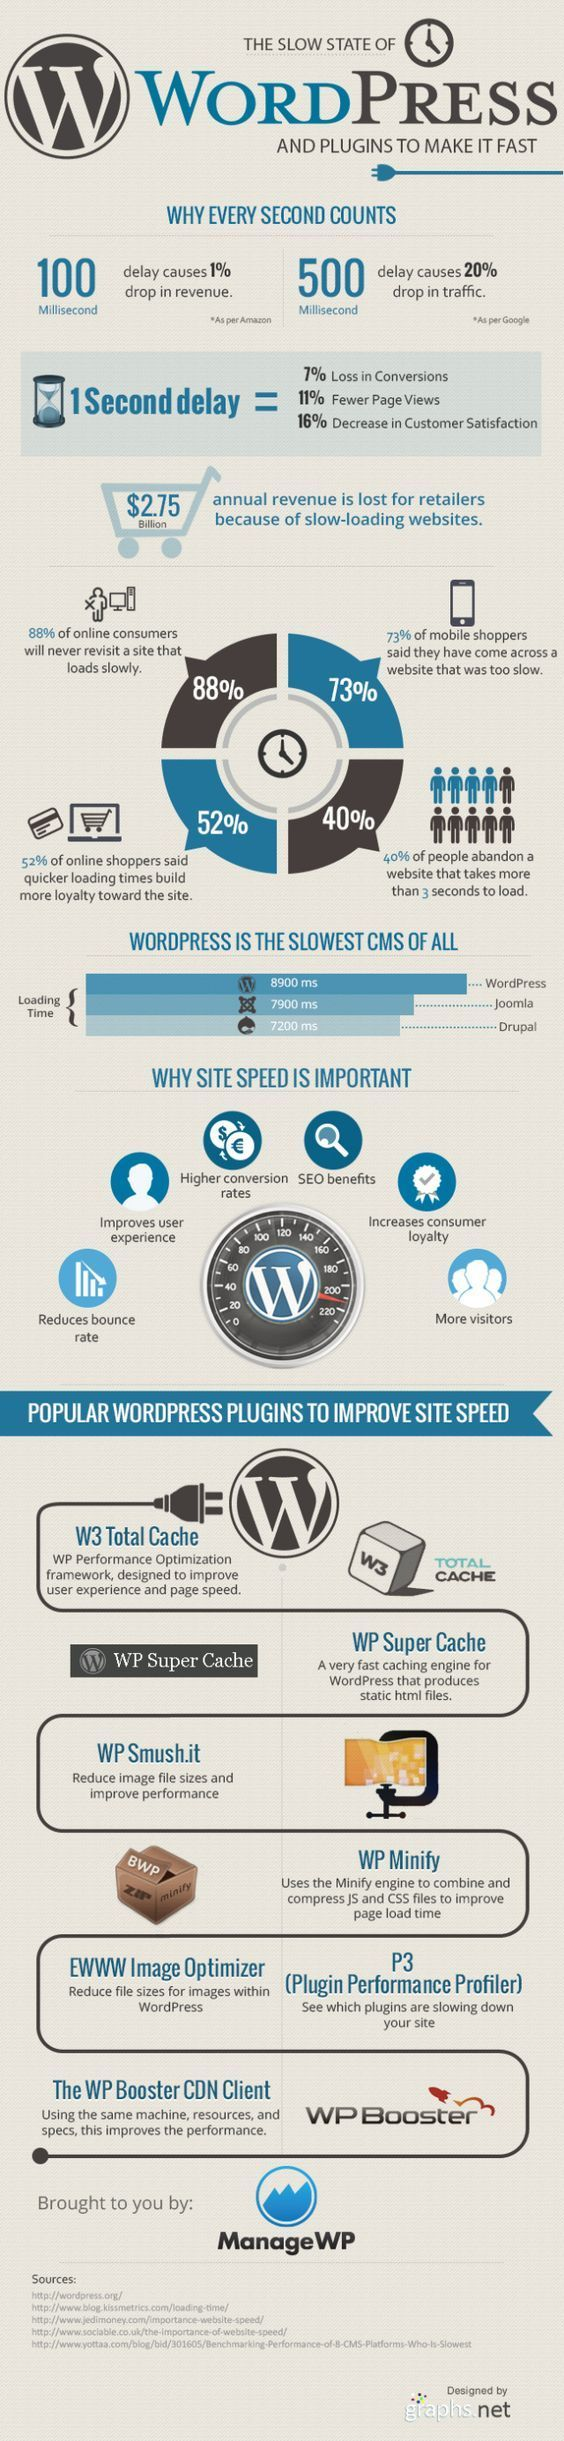 WPO y plugins para WordPress